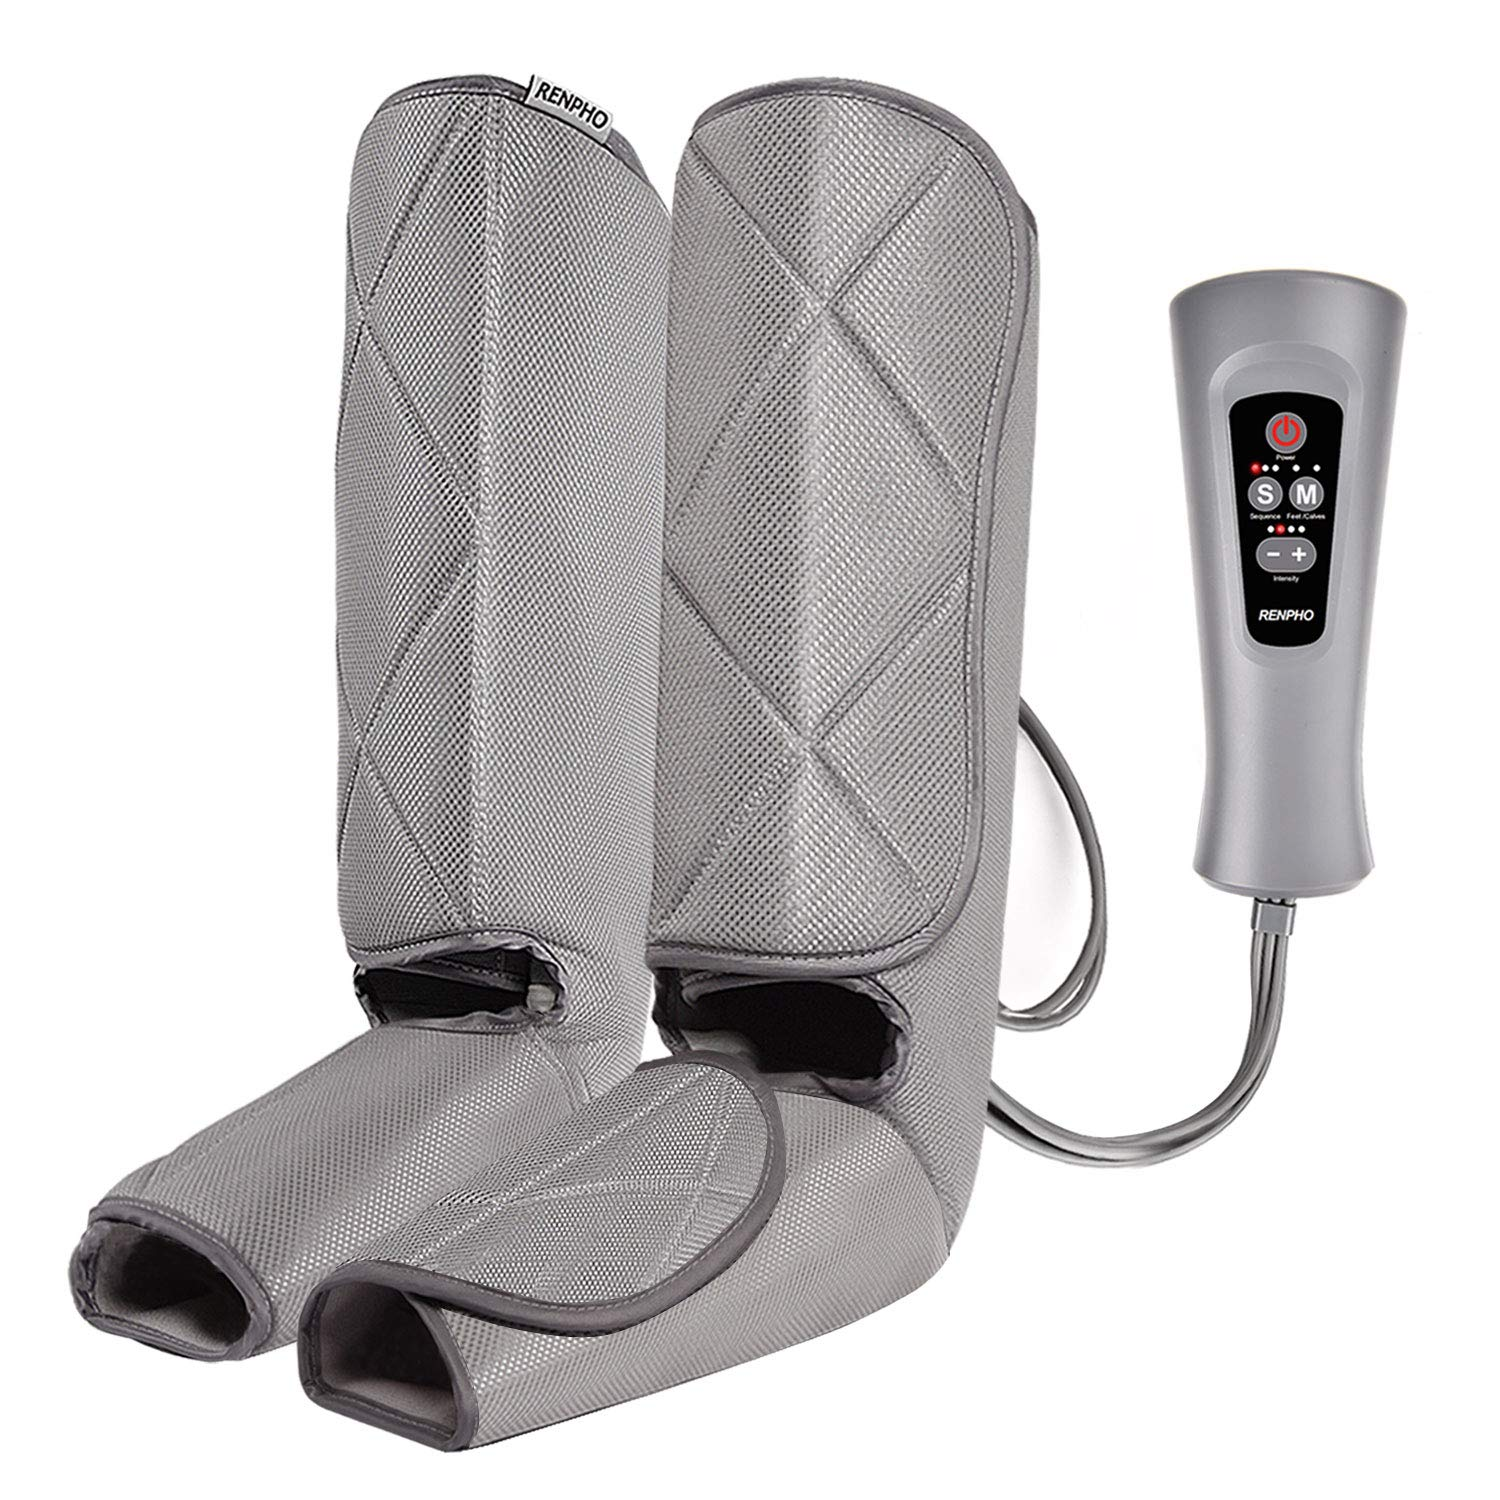 RENPHO Compression Massager Over Wide Intensities